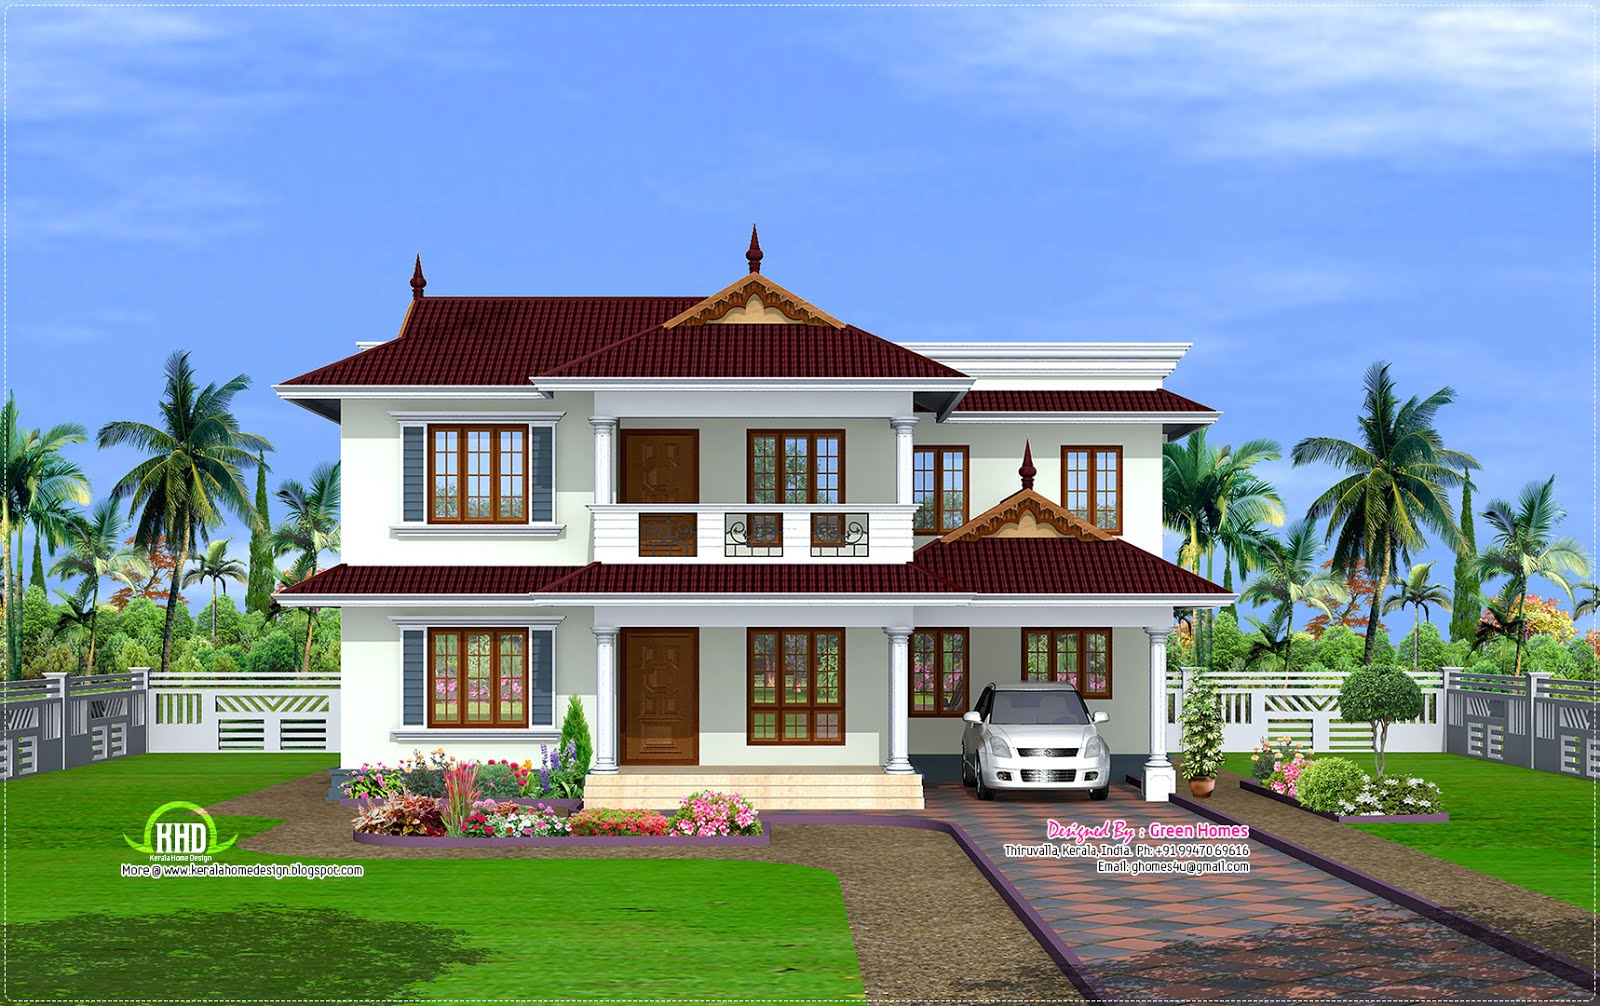 2600 kerala model house house design plans for Green home blueprints